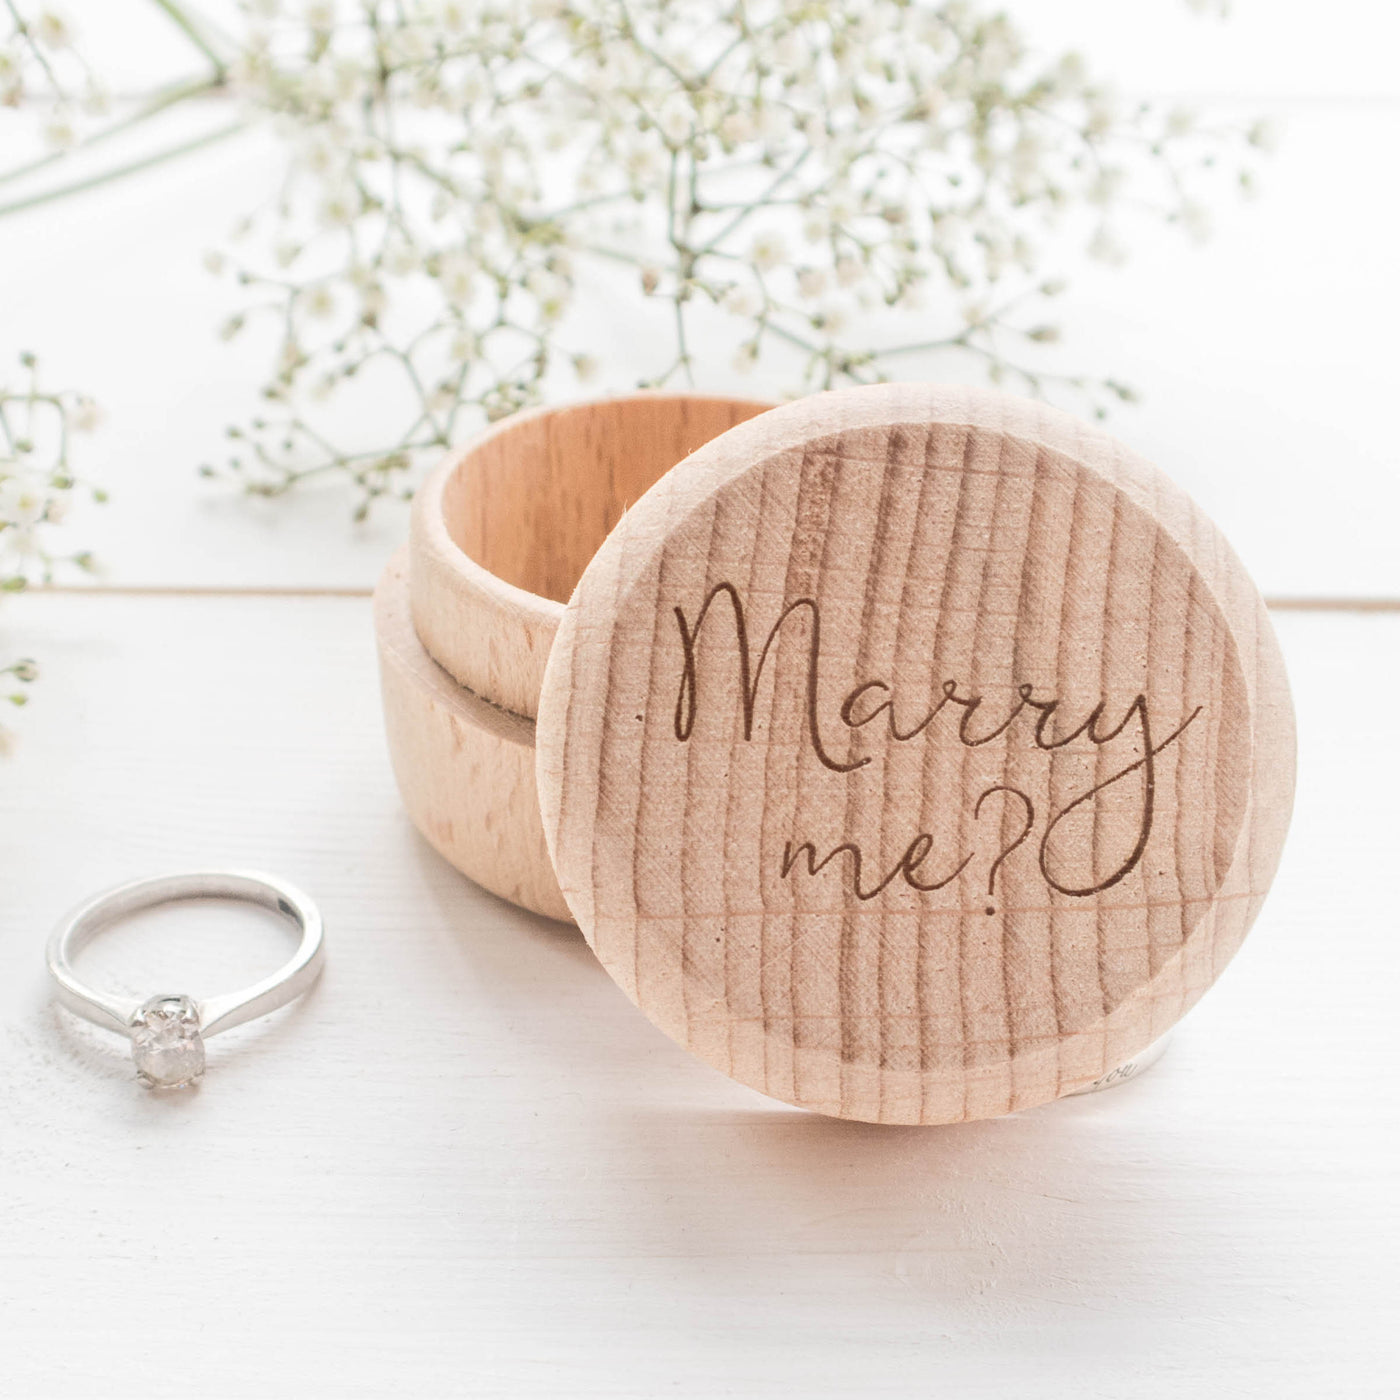 Marry Me? Ring Box